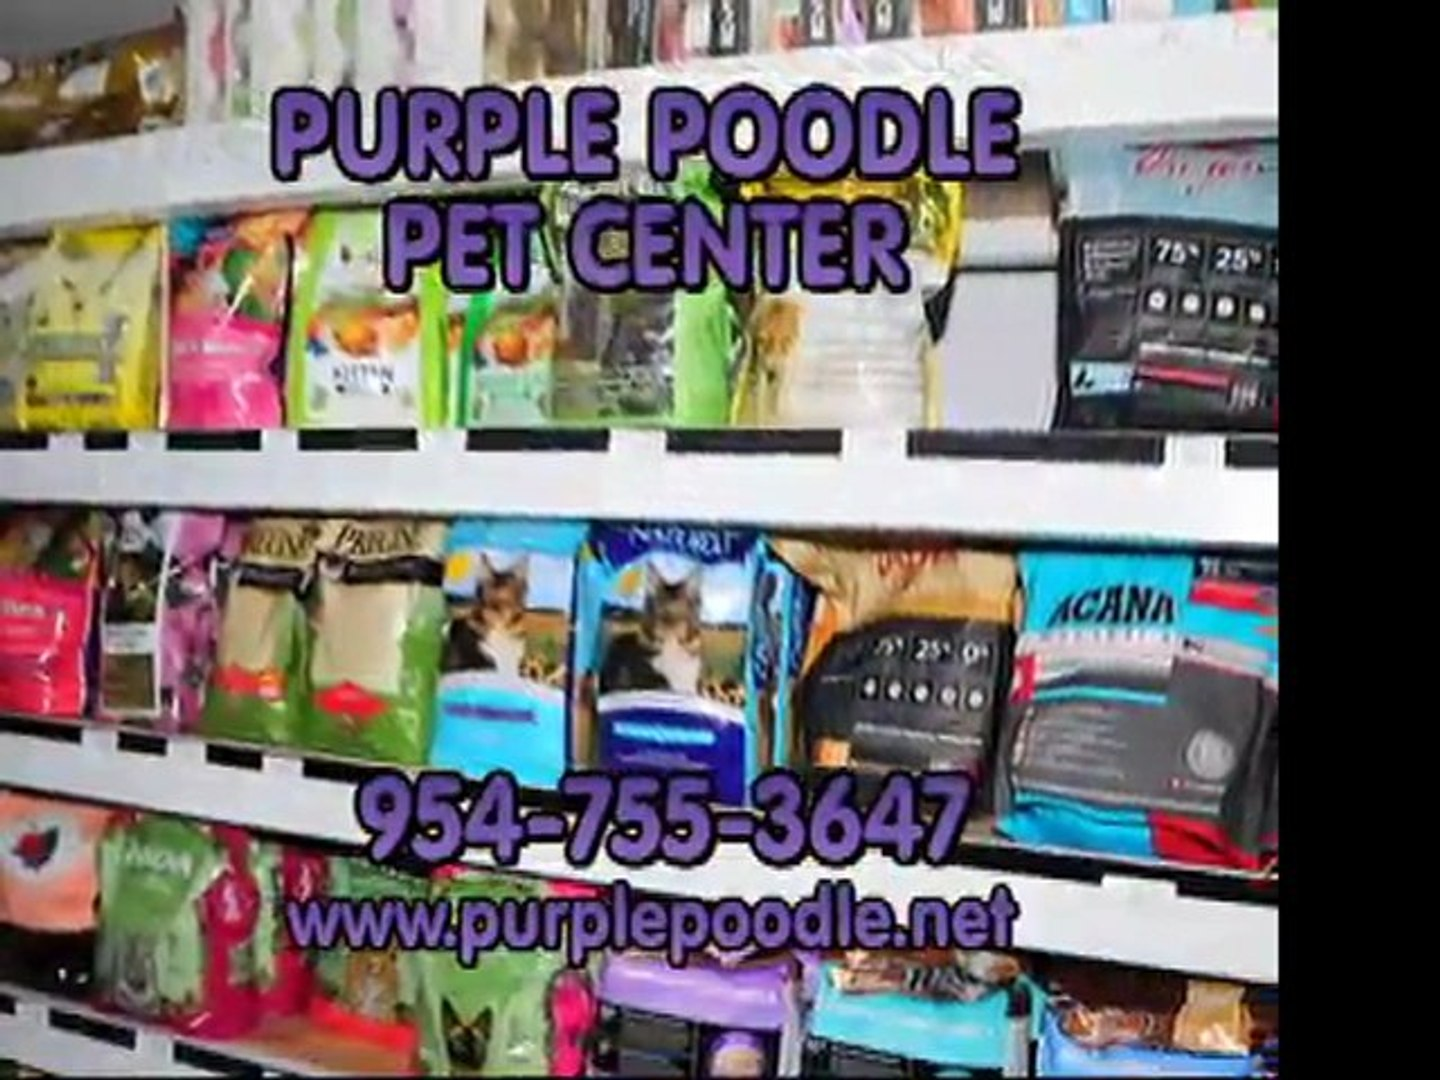 PURPLE POODLE  Purple Poodle Pet Center, 954-755-3647 Wheaten Groomer Shitzu, Poodle, Care. Coral Sp